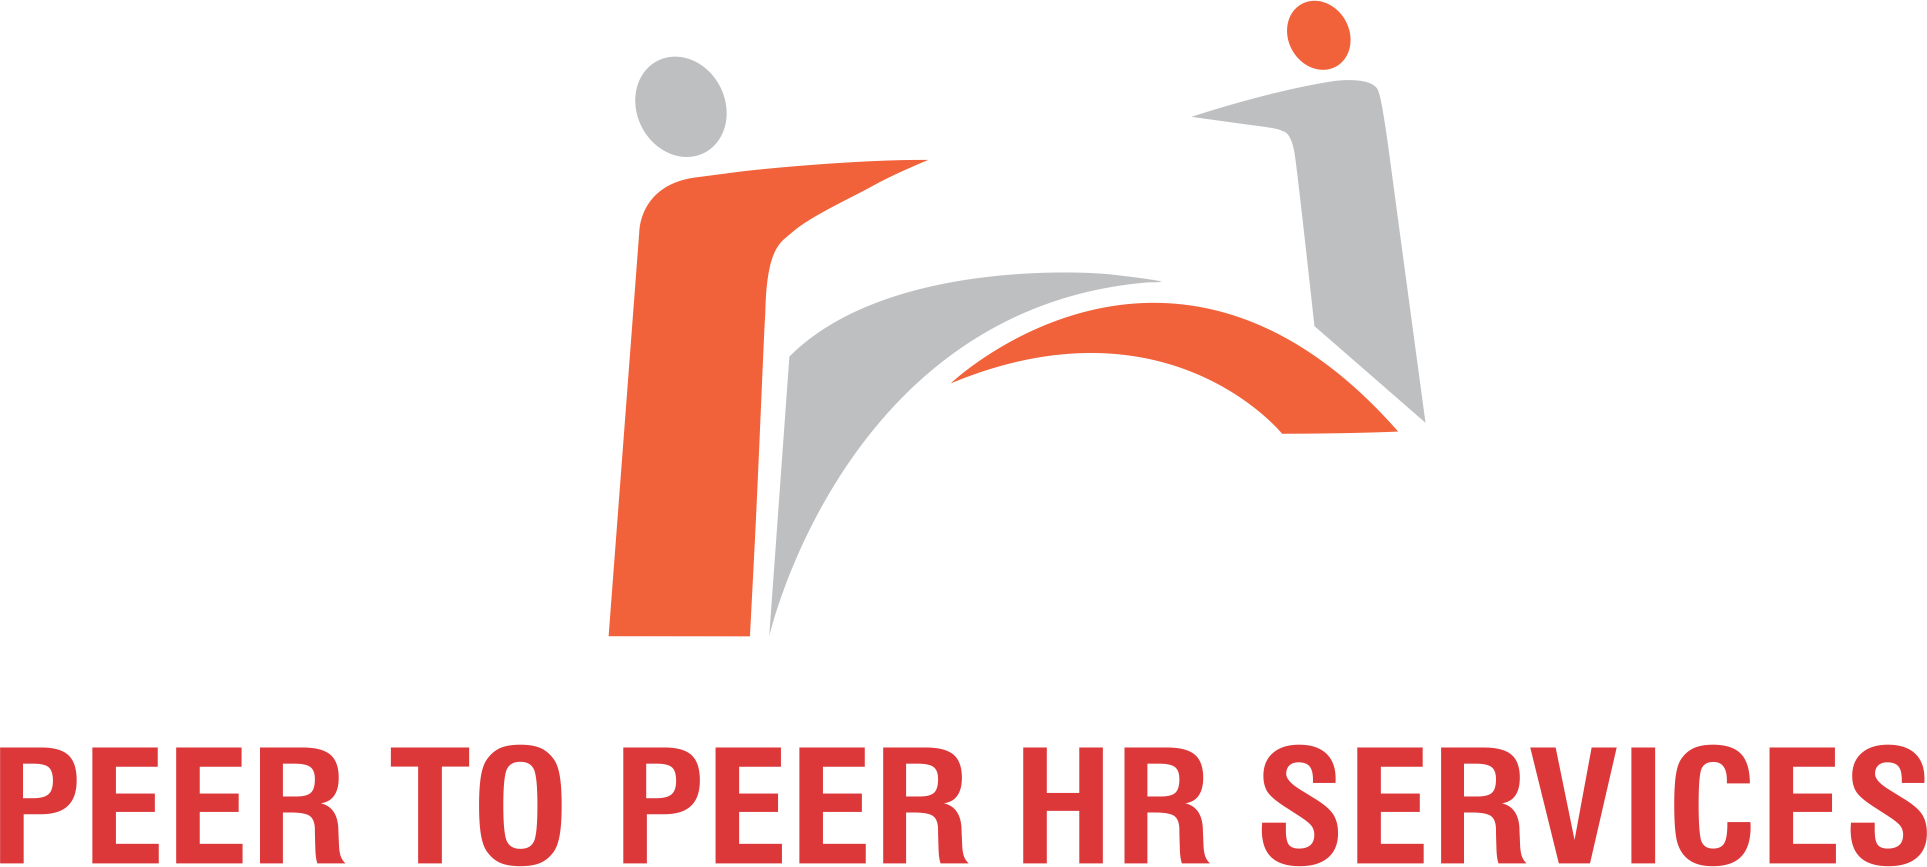 Peer to Peer HR services